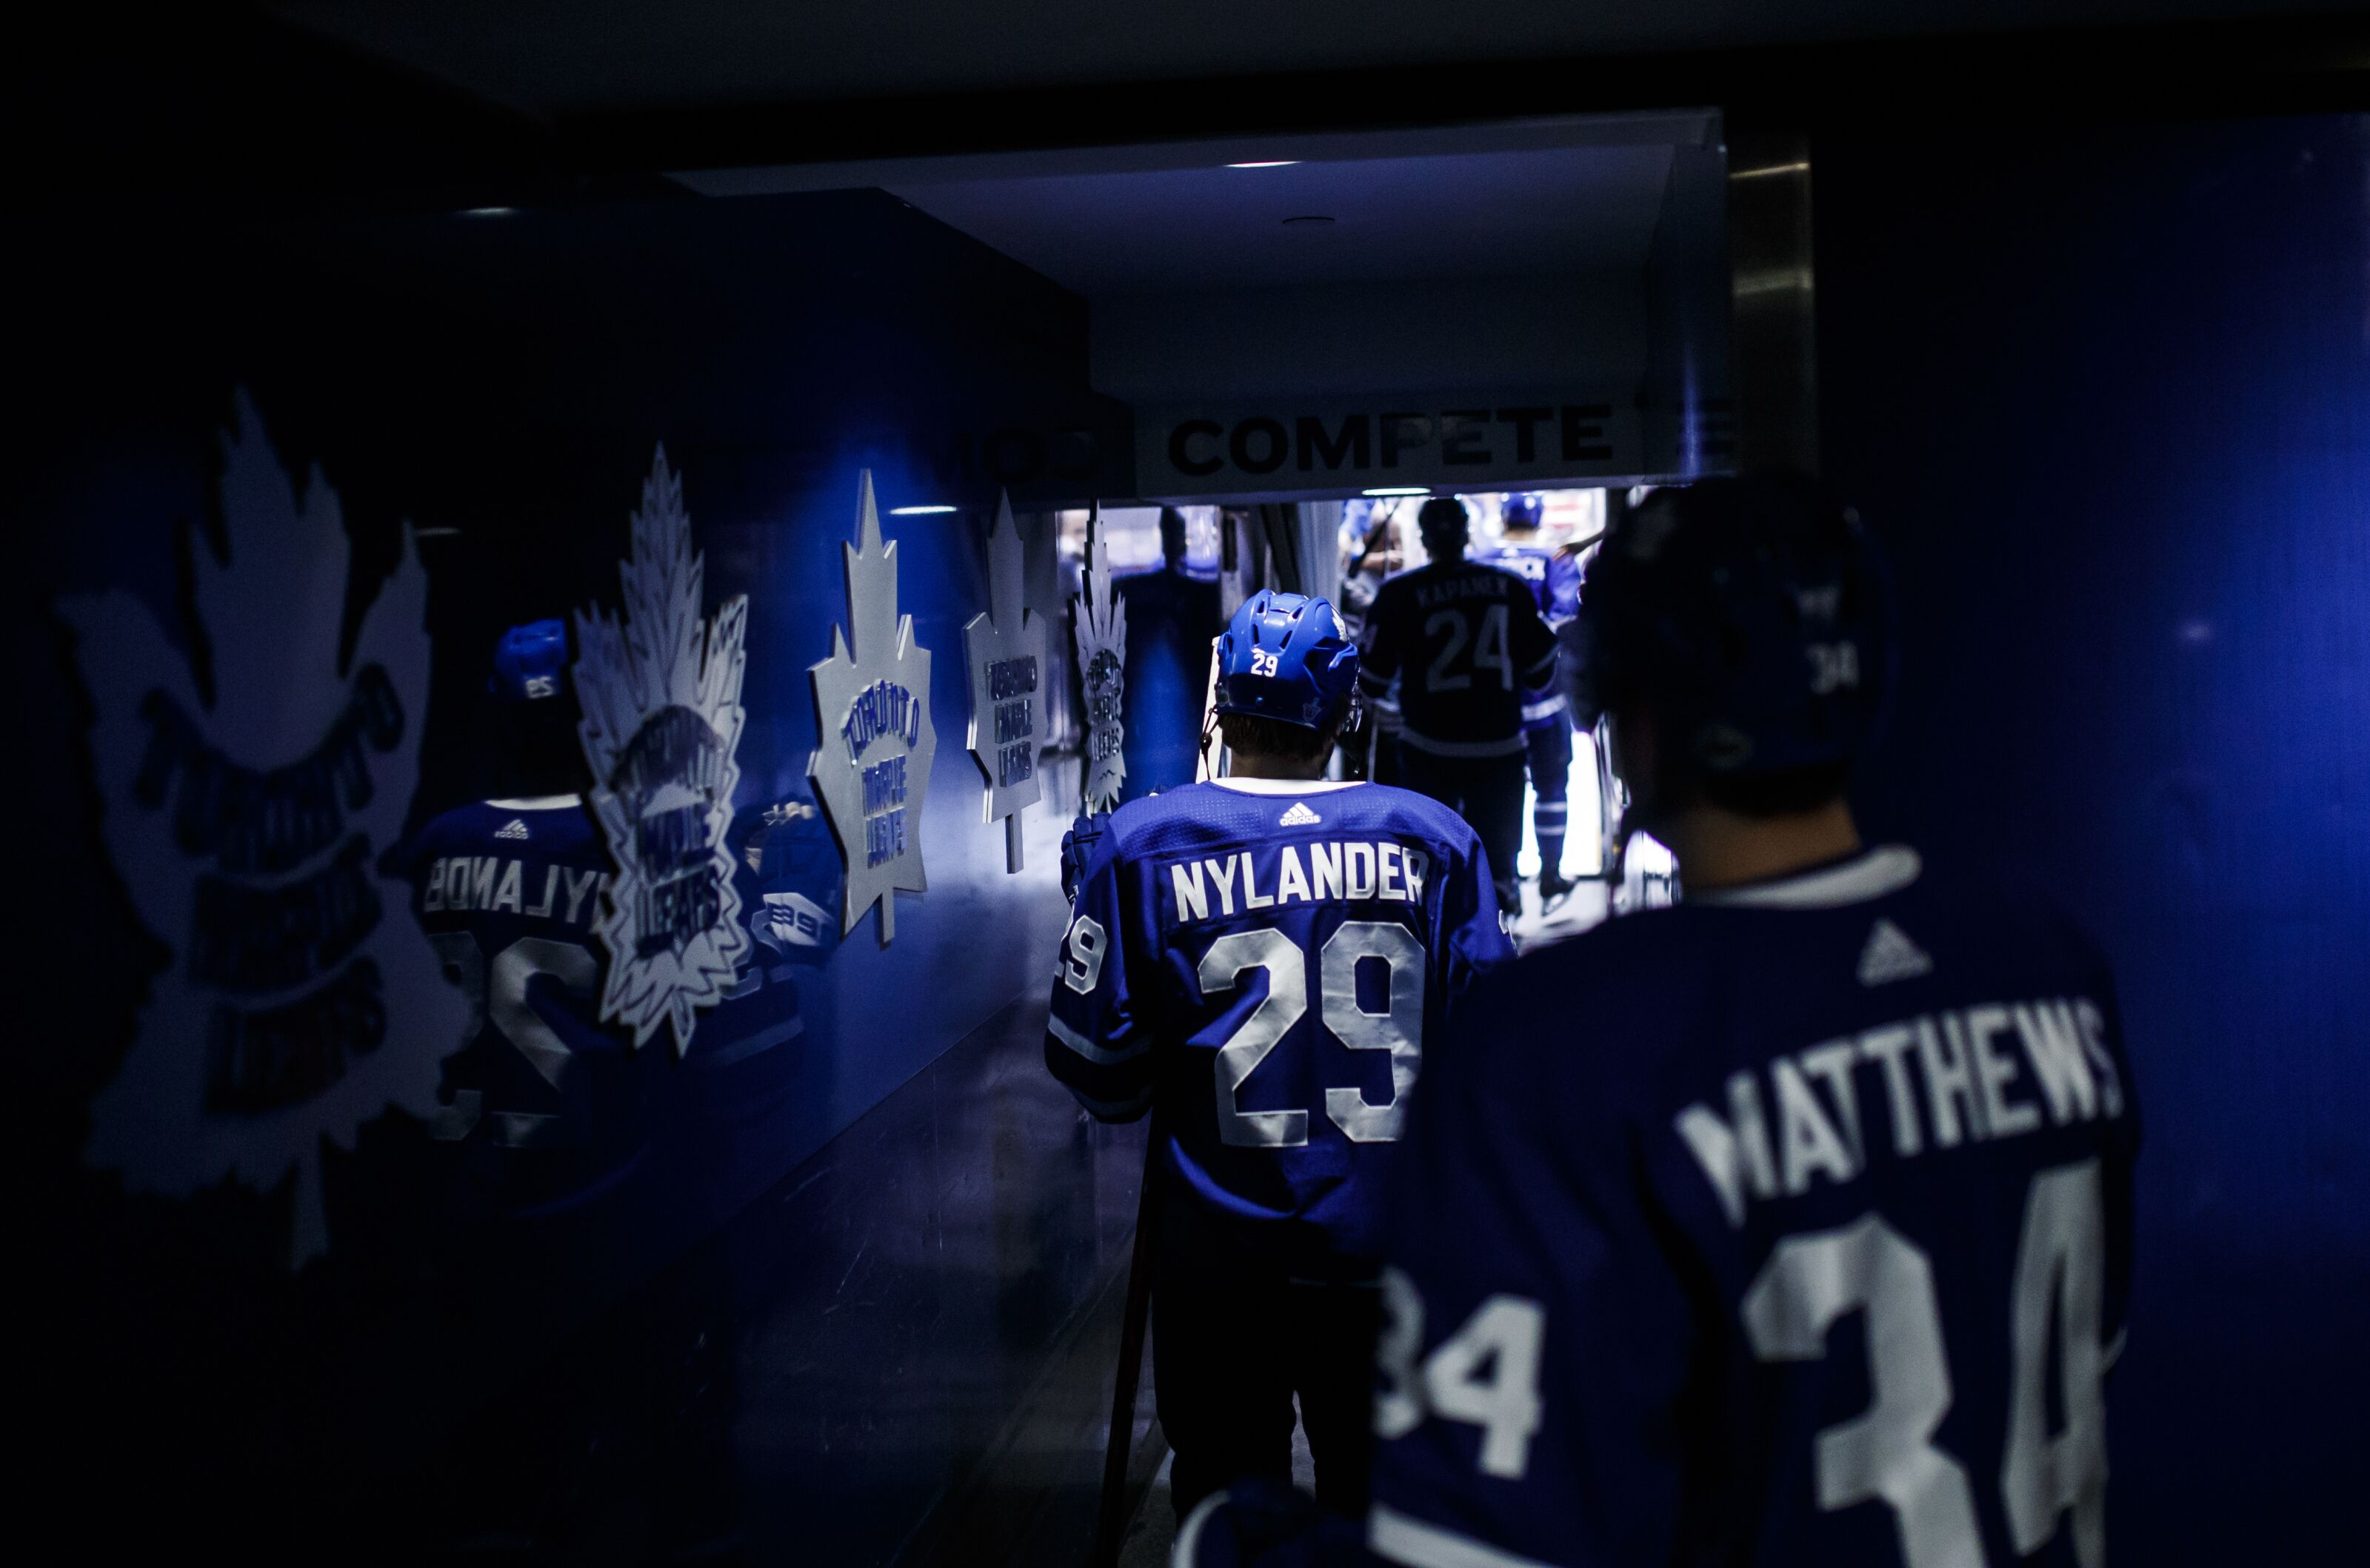 Toronto Maple Leafs: The Salary Cap is Hurting Hockey